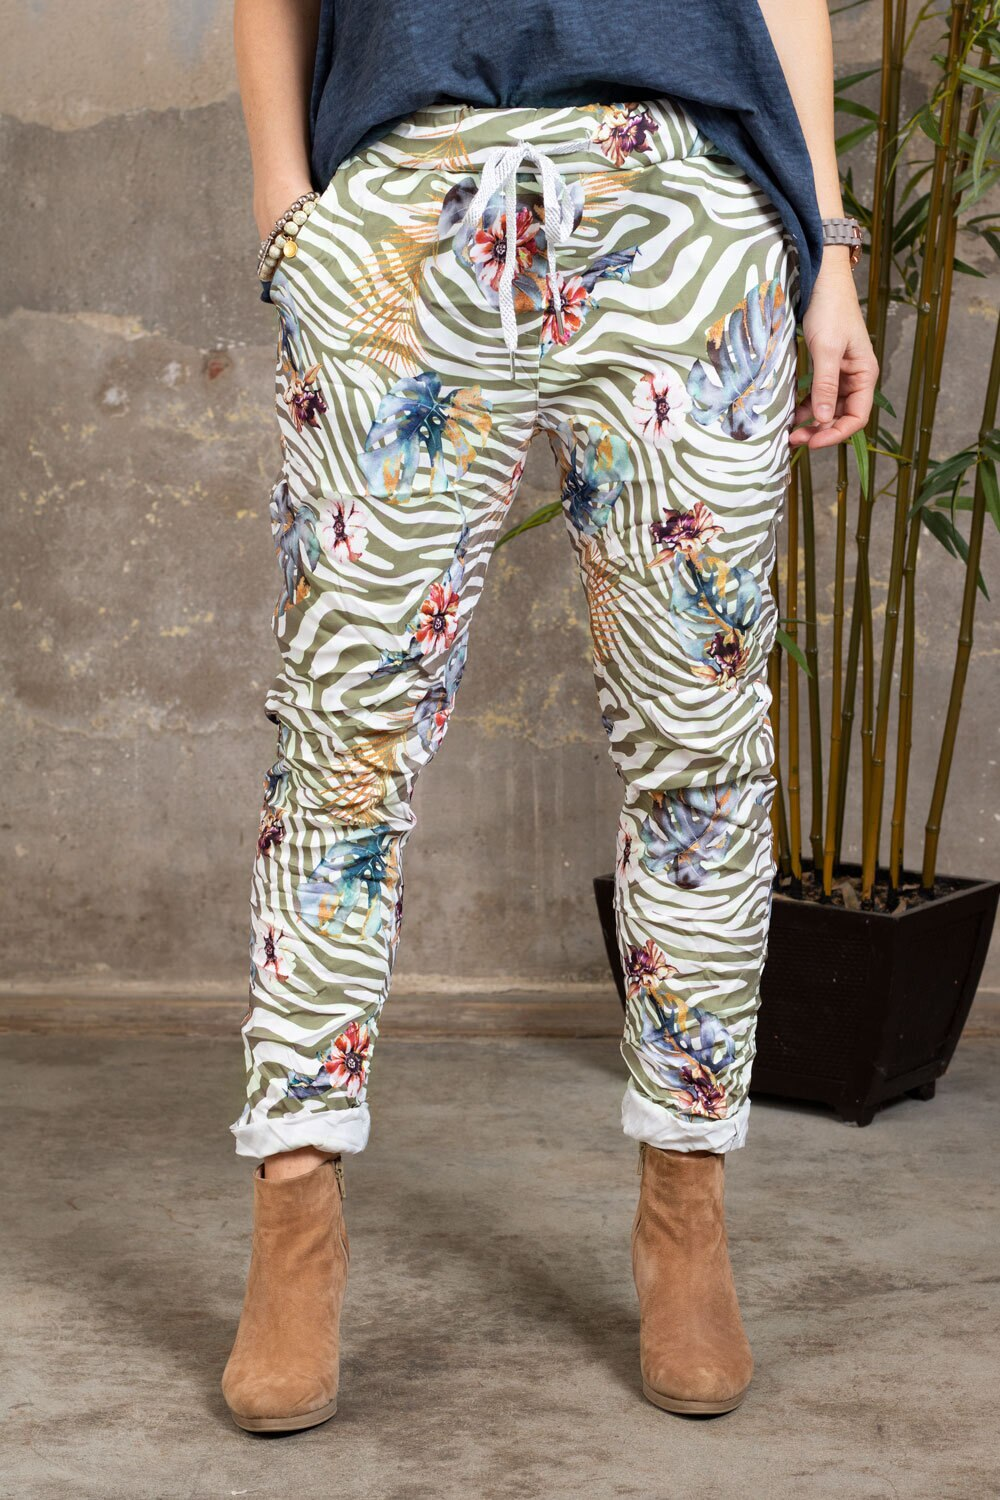 Stretch Pants - Zebra & Flowers - Khaki